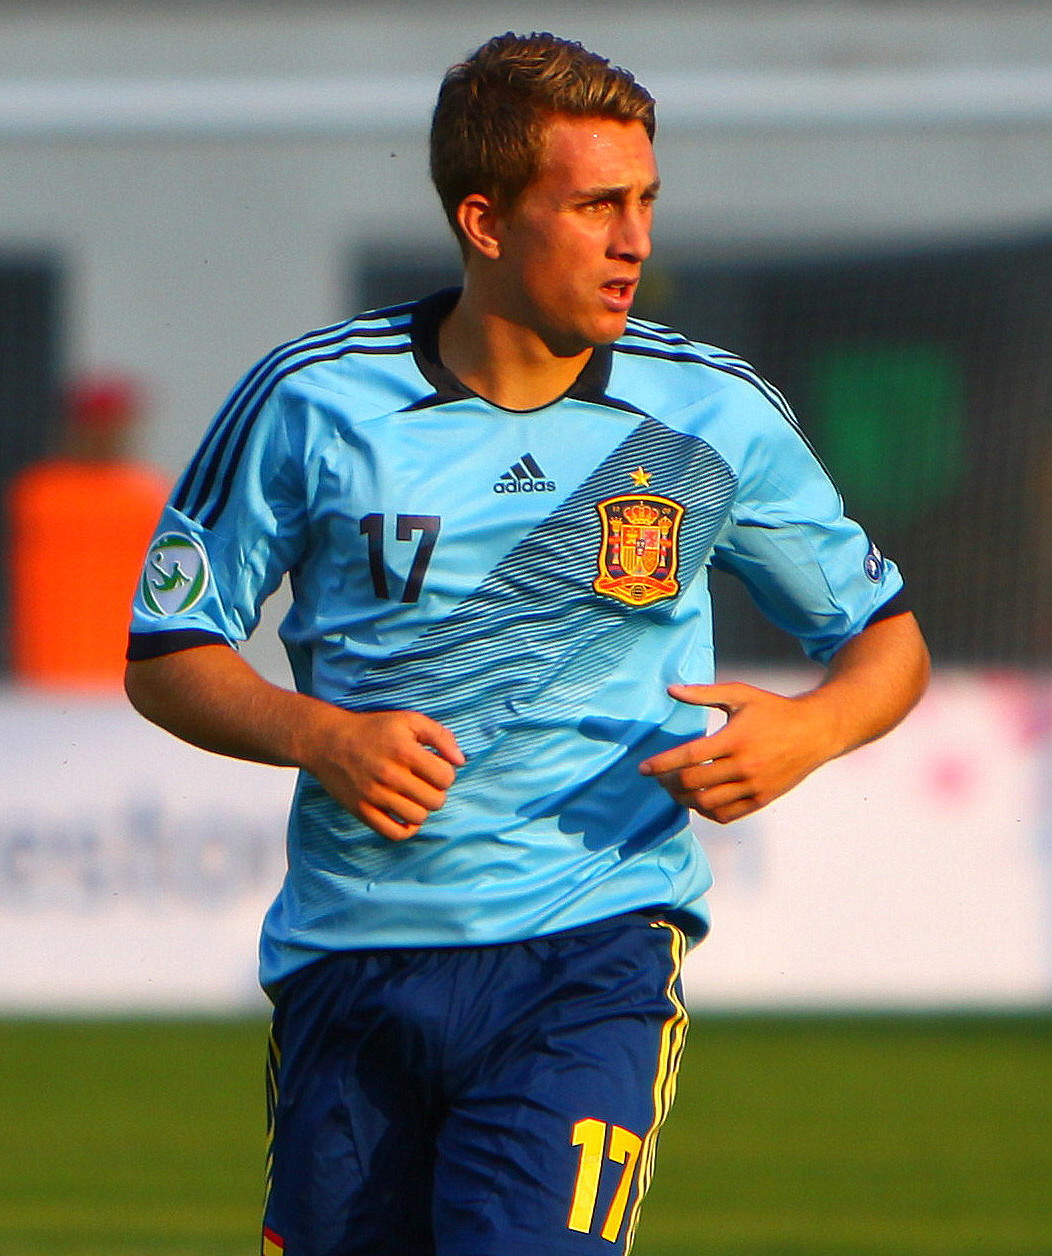 Football wonderkid Gerard Deulofeu